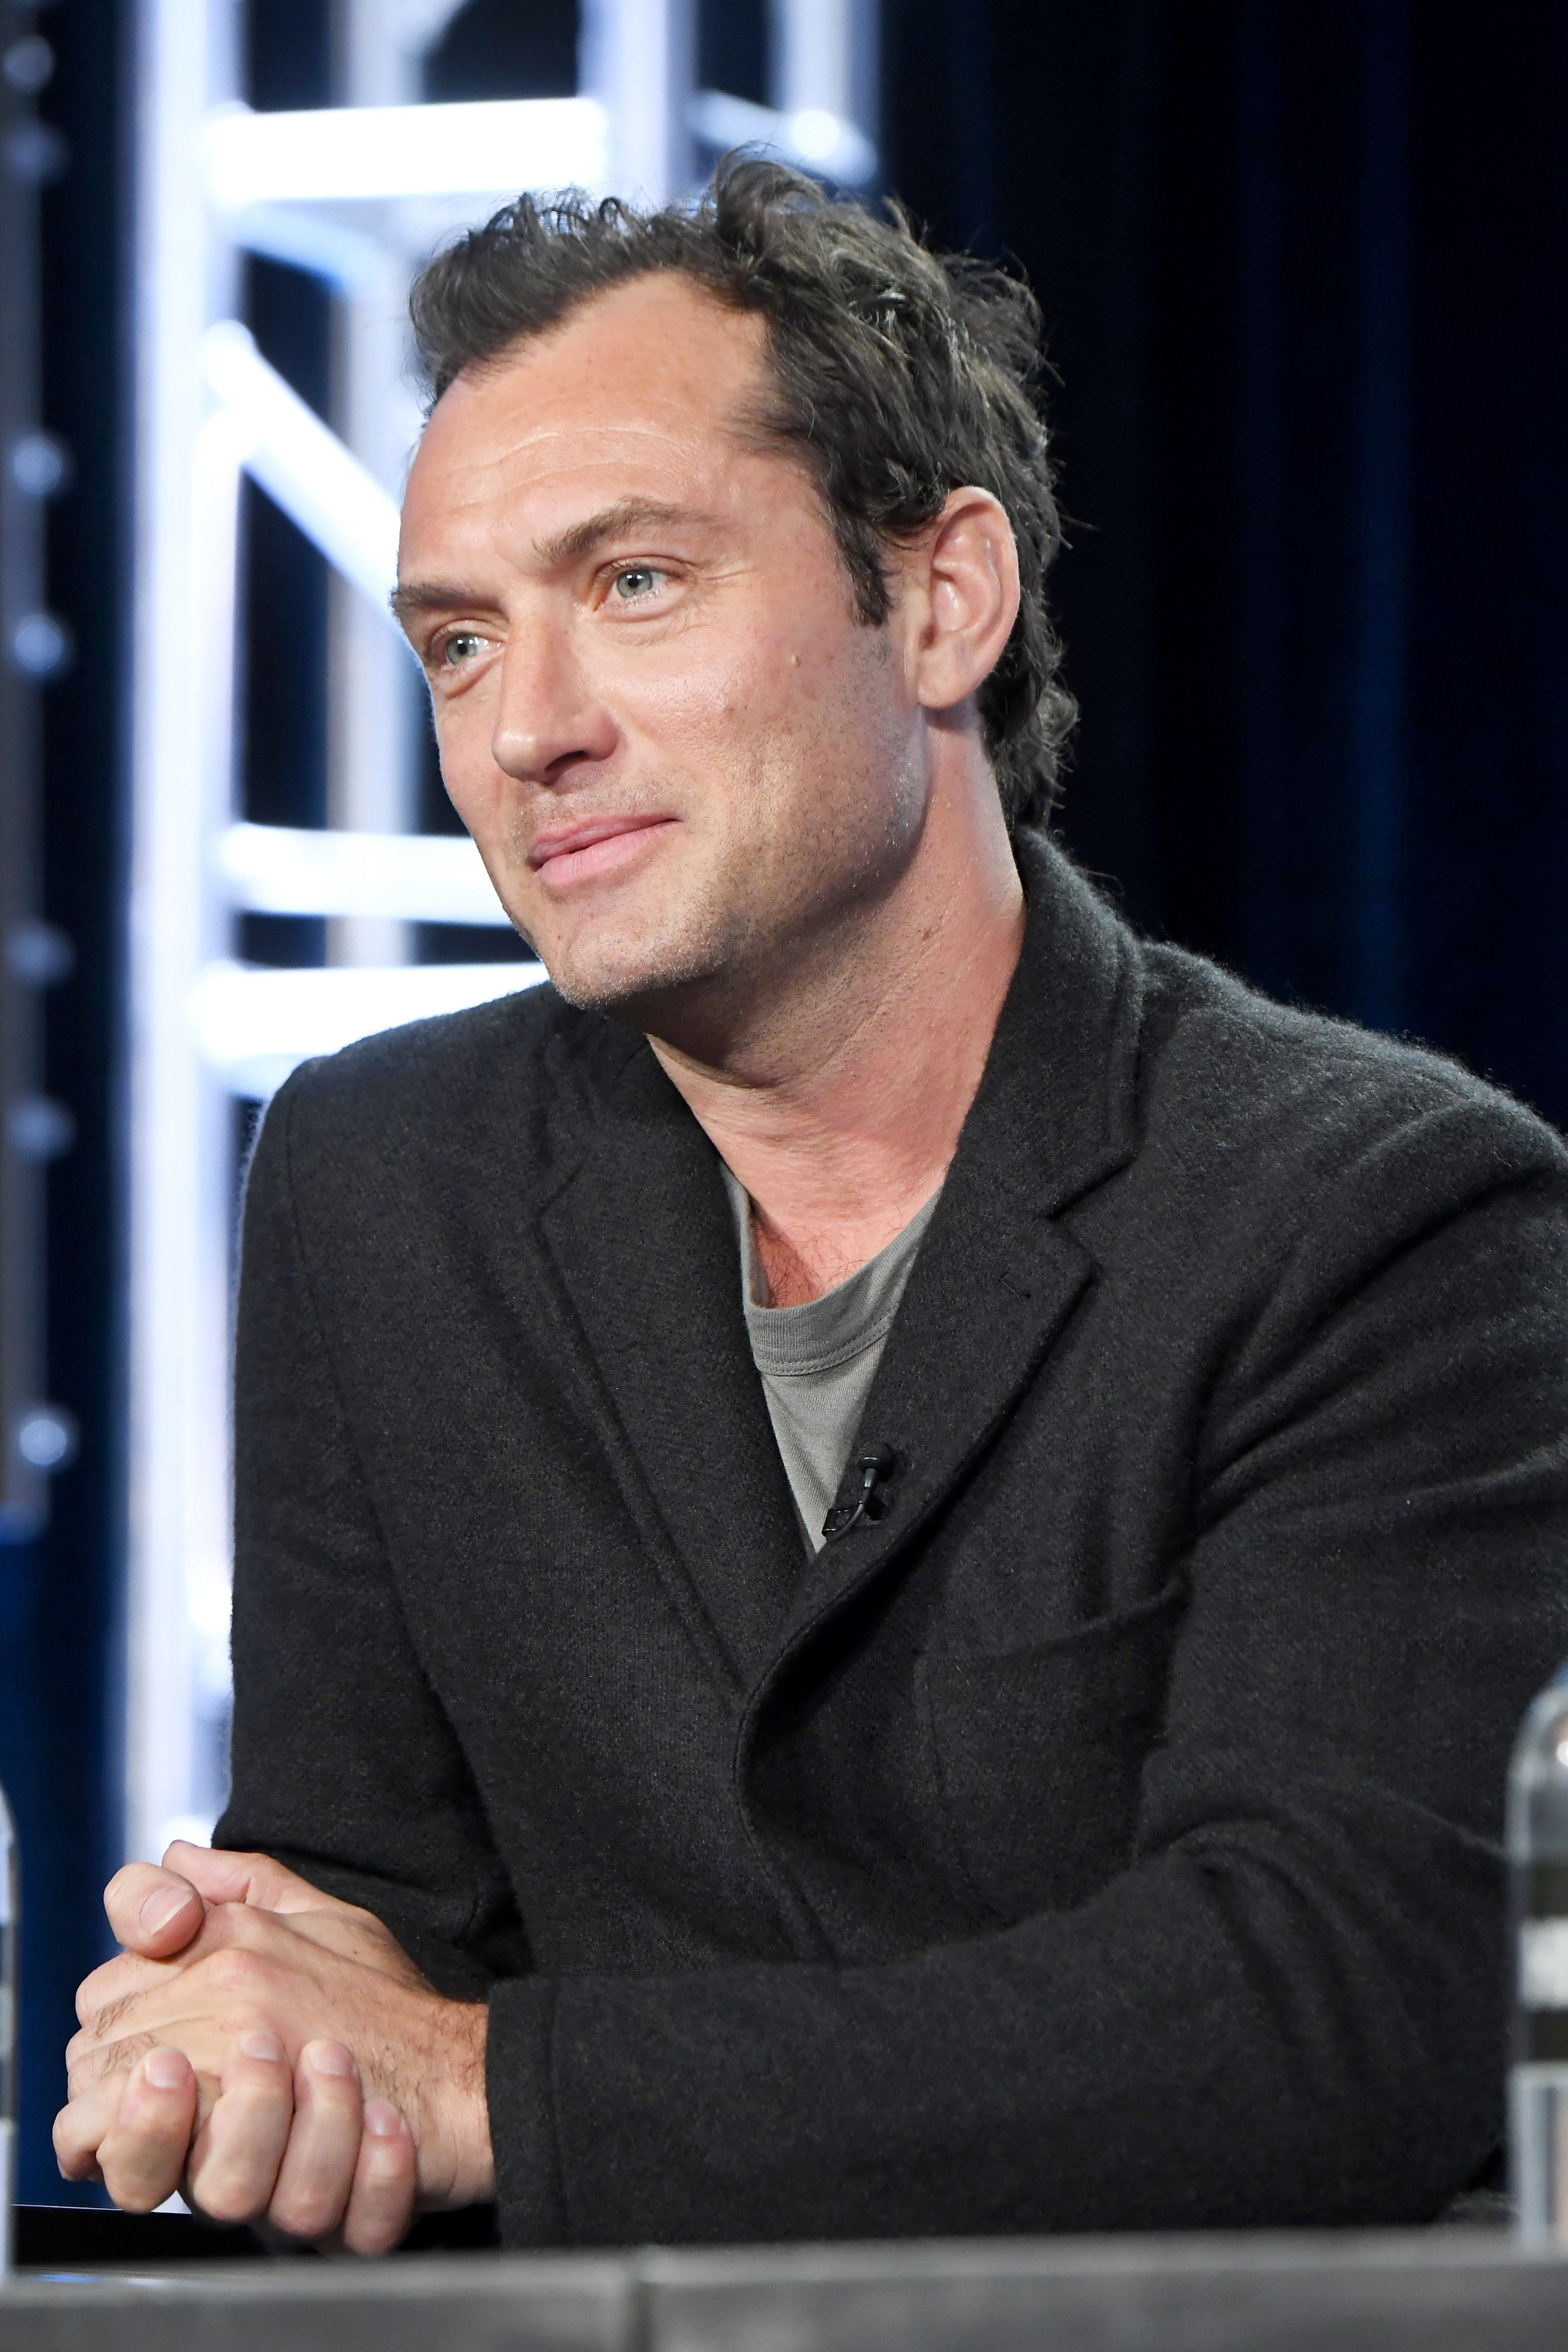 Jude Law Cast As Young Dumbledore For 'Fantastic Beasts'